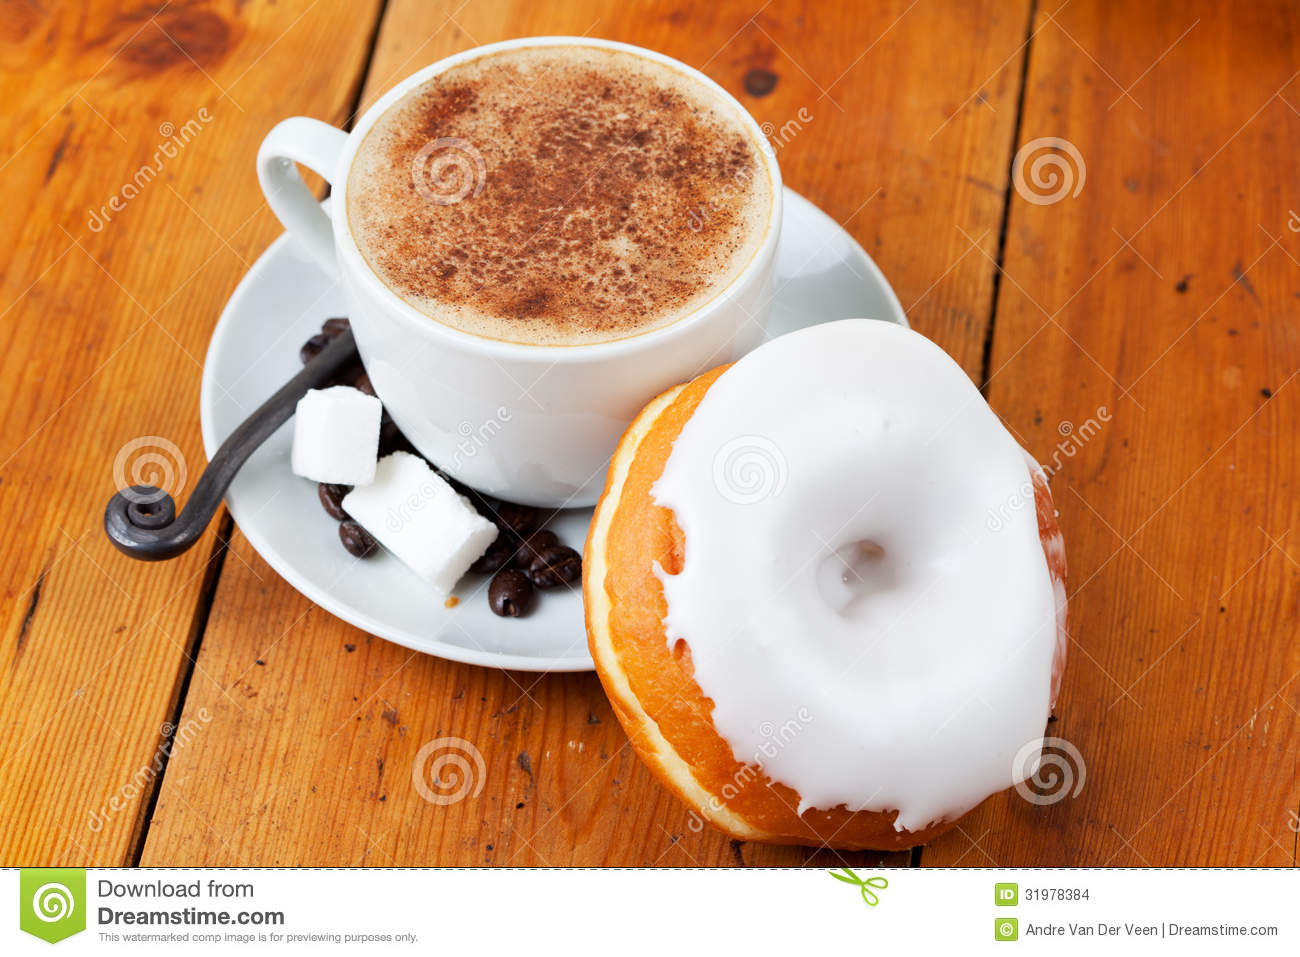 Fresh Cappuccino And Doughnut With White Frosting Stock Images   Image